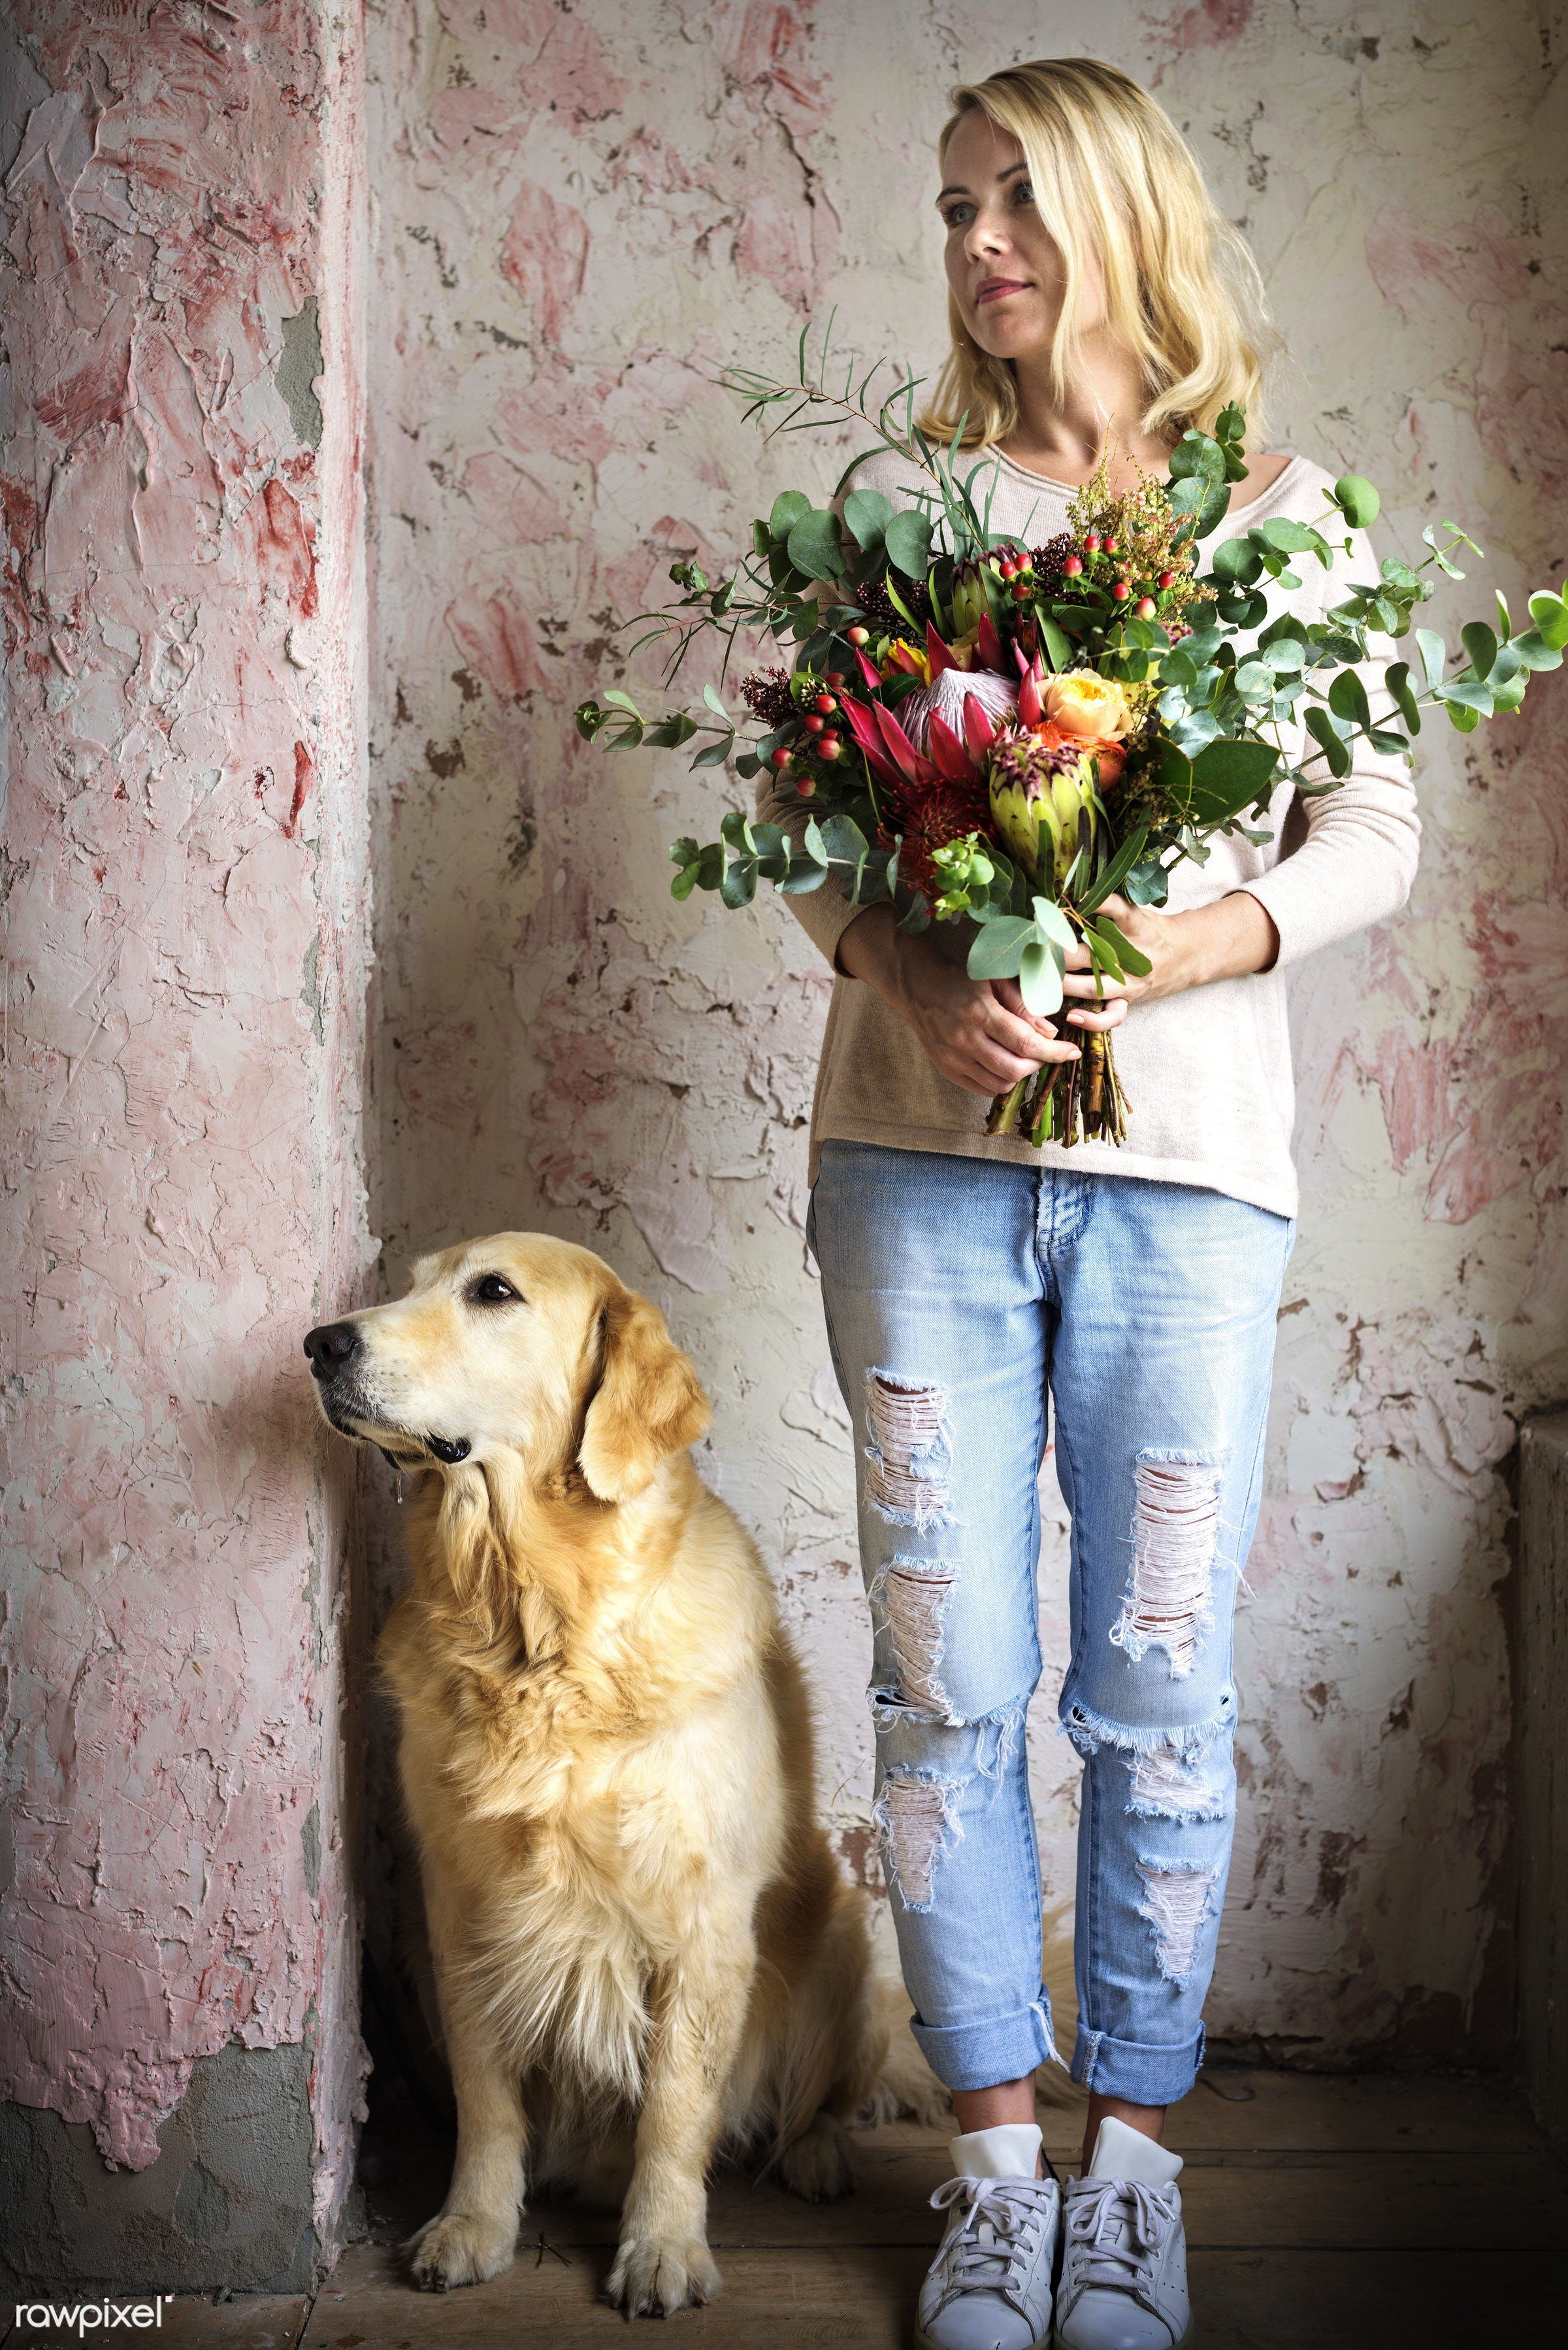 bouquet, detail, person, diverse, holding, show, people, decor, love, nature, woman, care, flowers, cheerful, refreshment,...